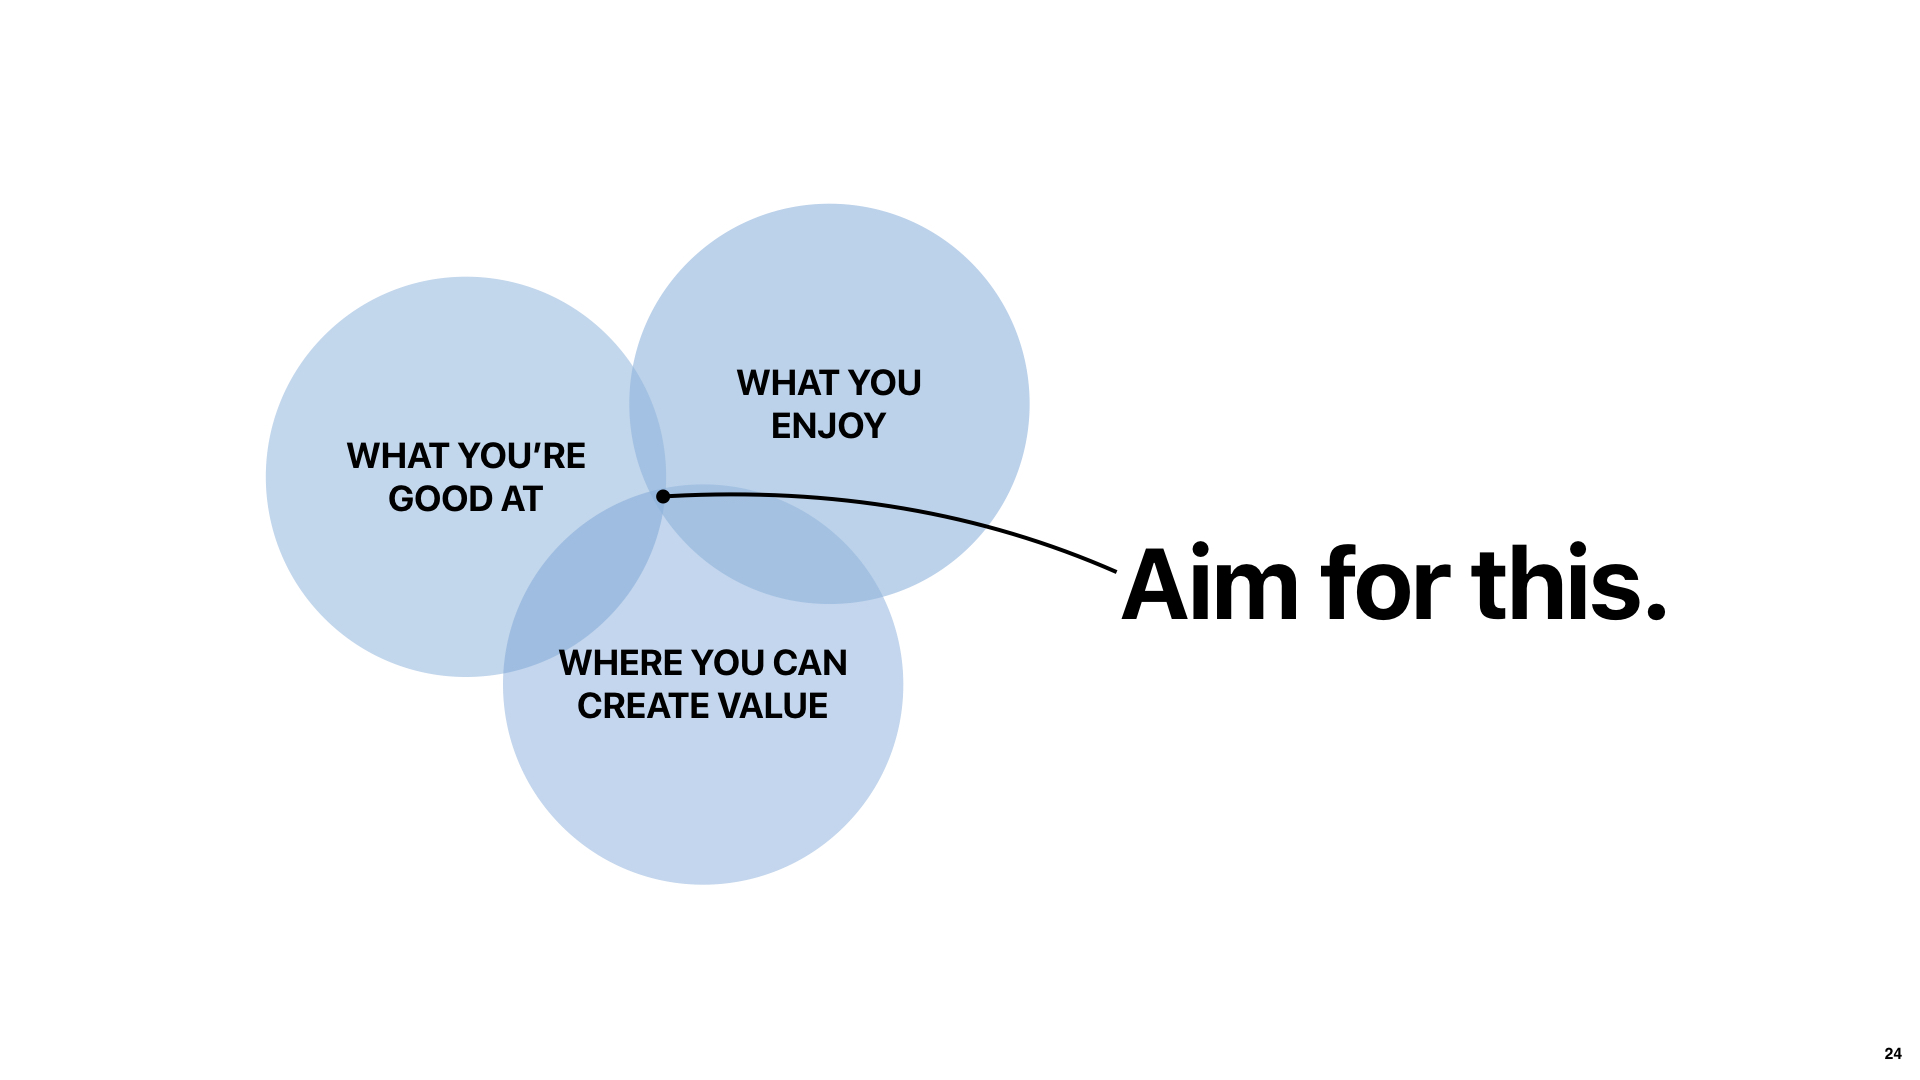 Intersection of what you're good at, what you enjoy and where you can create value